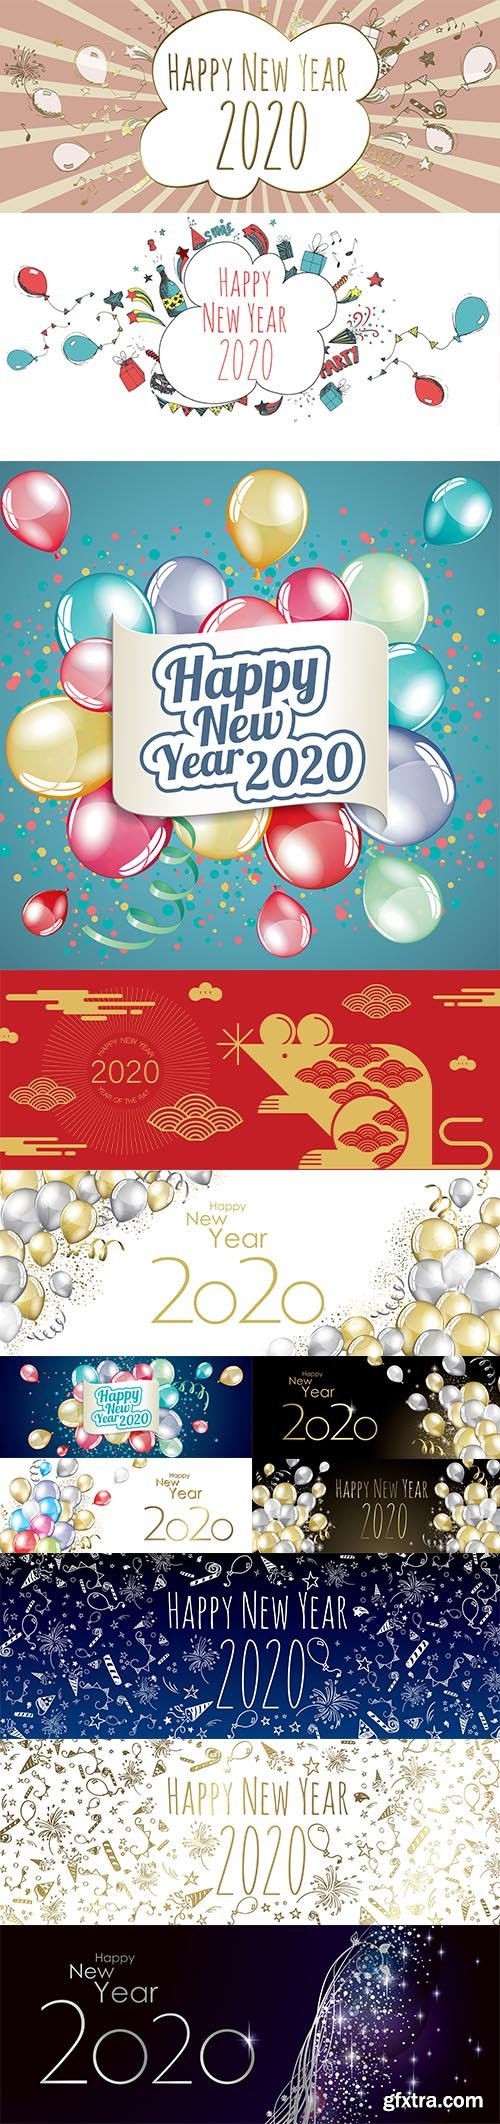 Merry Christmas and Happy New Year 2020 Illustrations Set 3